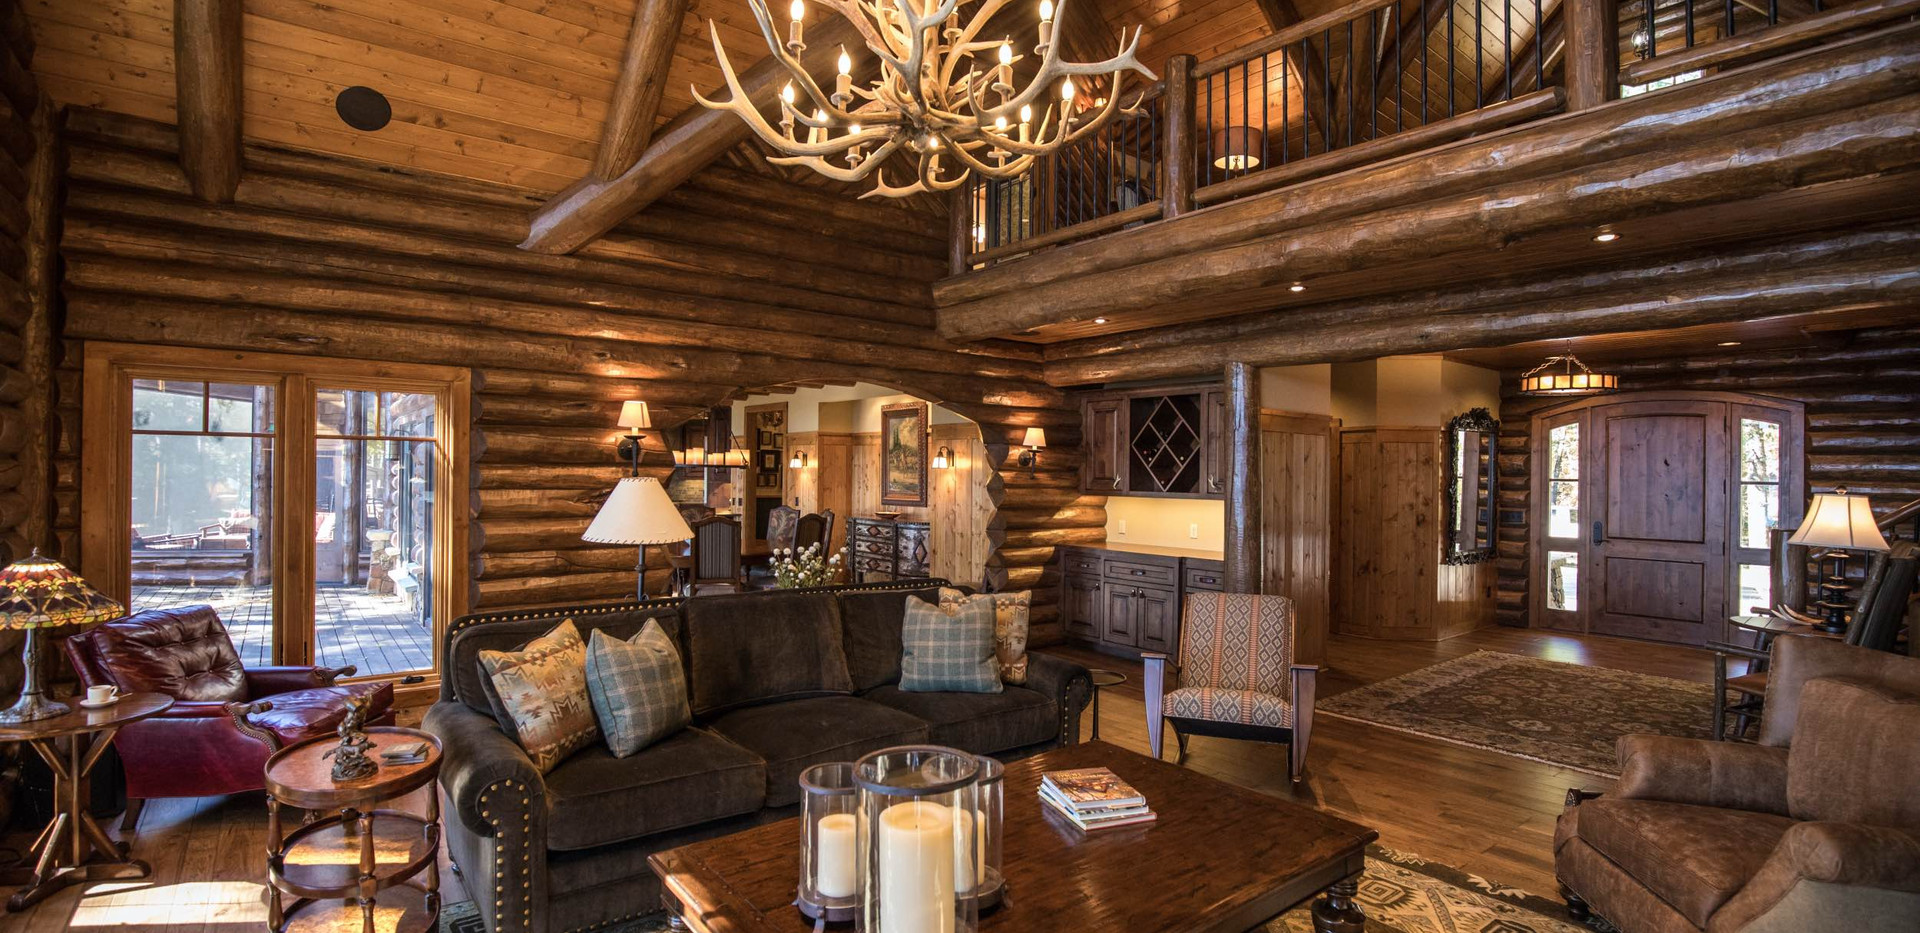 Traditional Log Construction Great Room